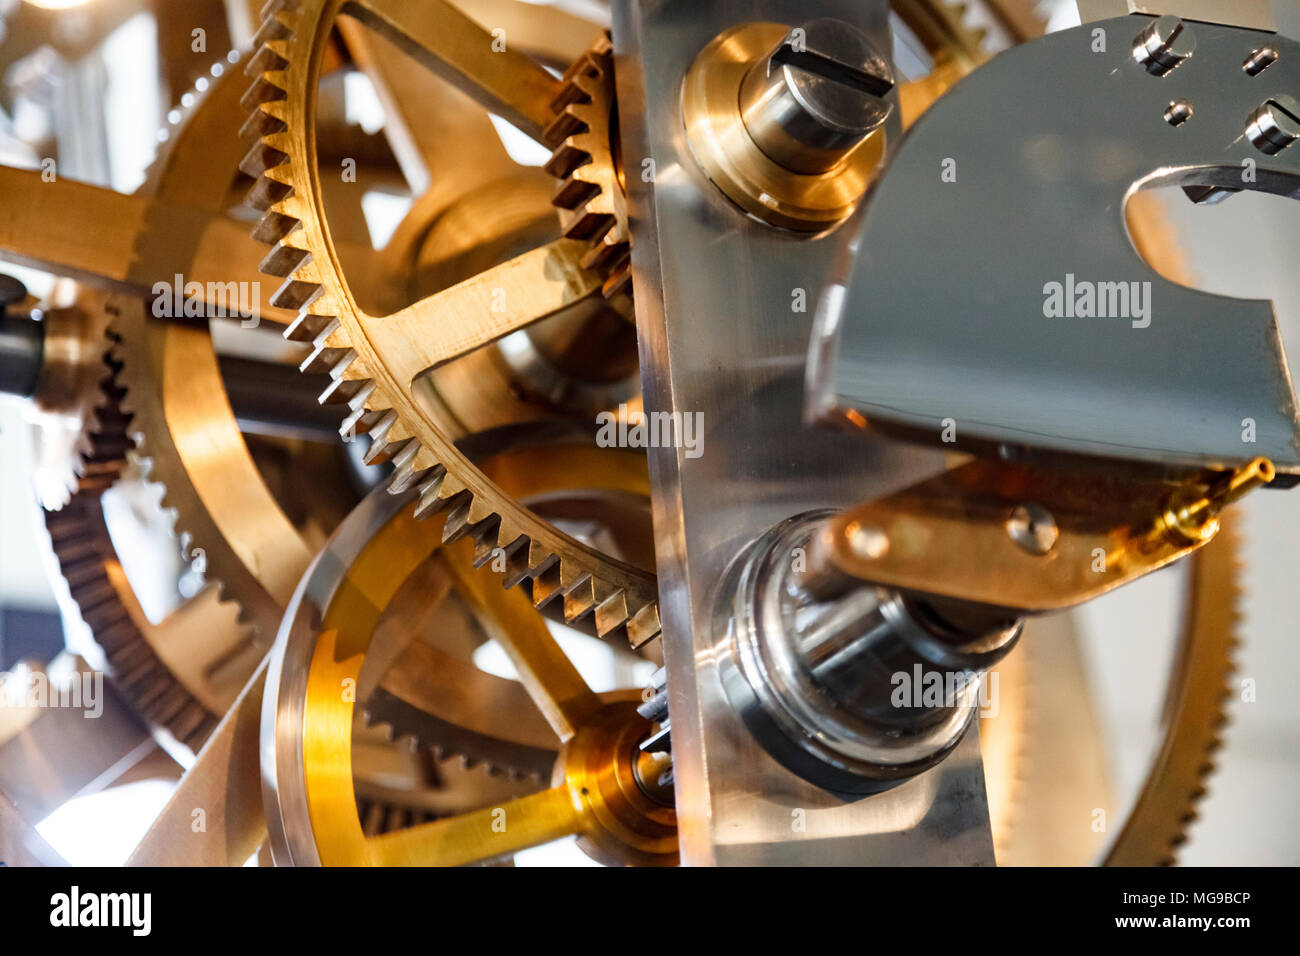 Clock mechanism with gears. - Stock Image